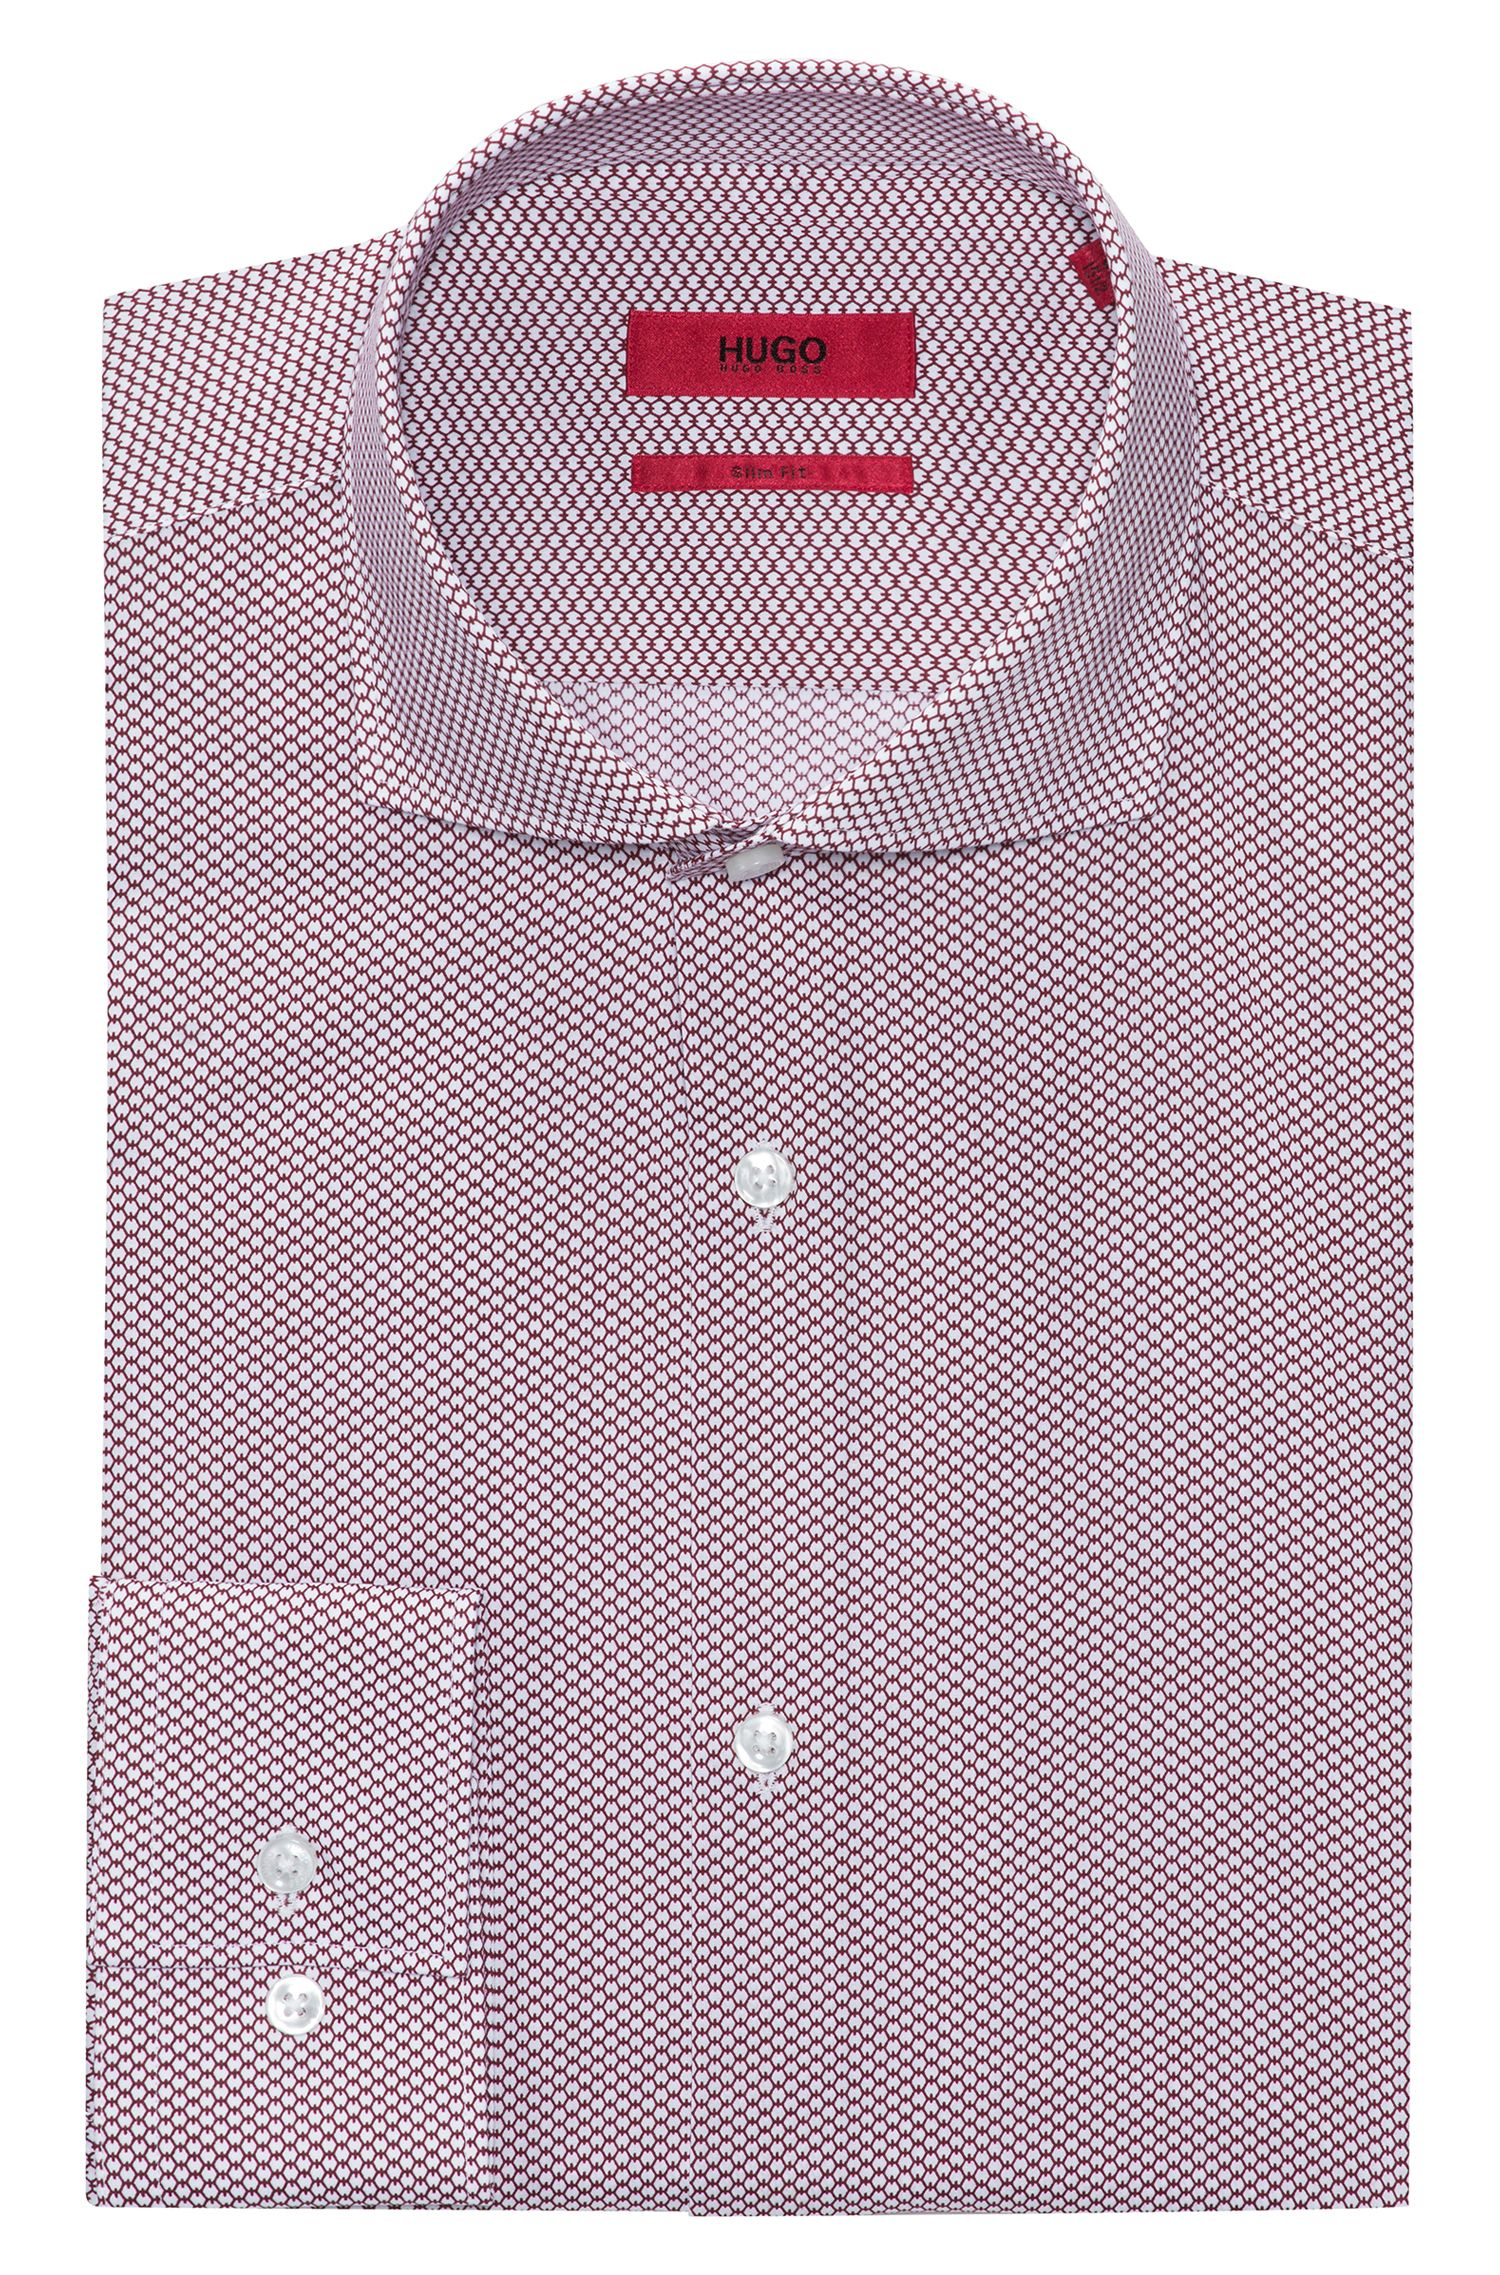 Micro-patterned cotton shirt in a slim fit